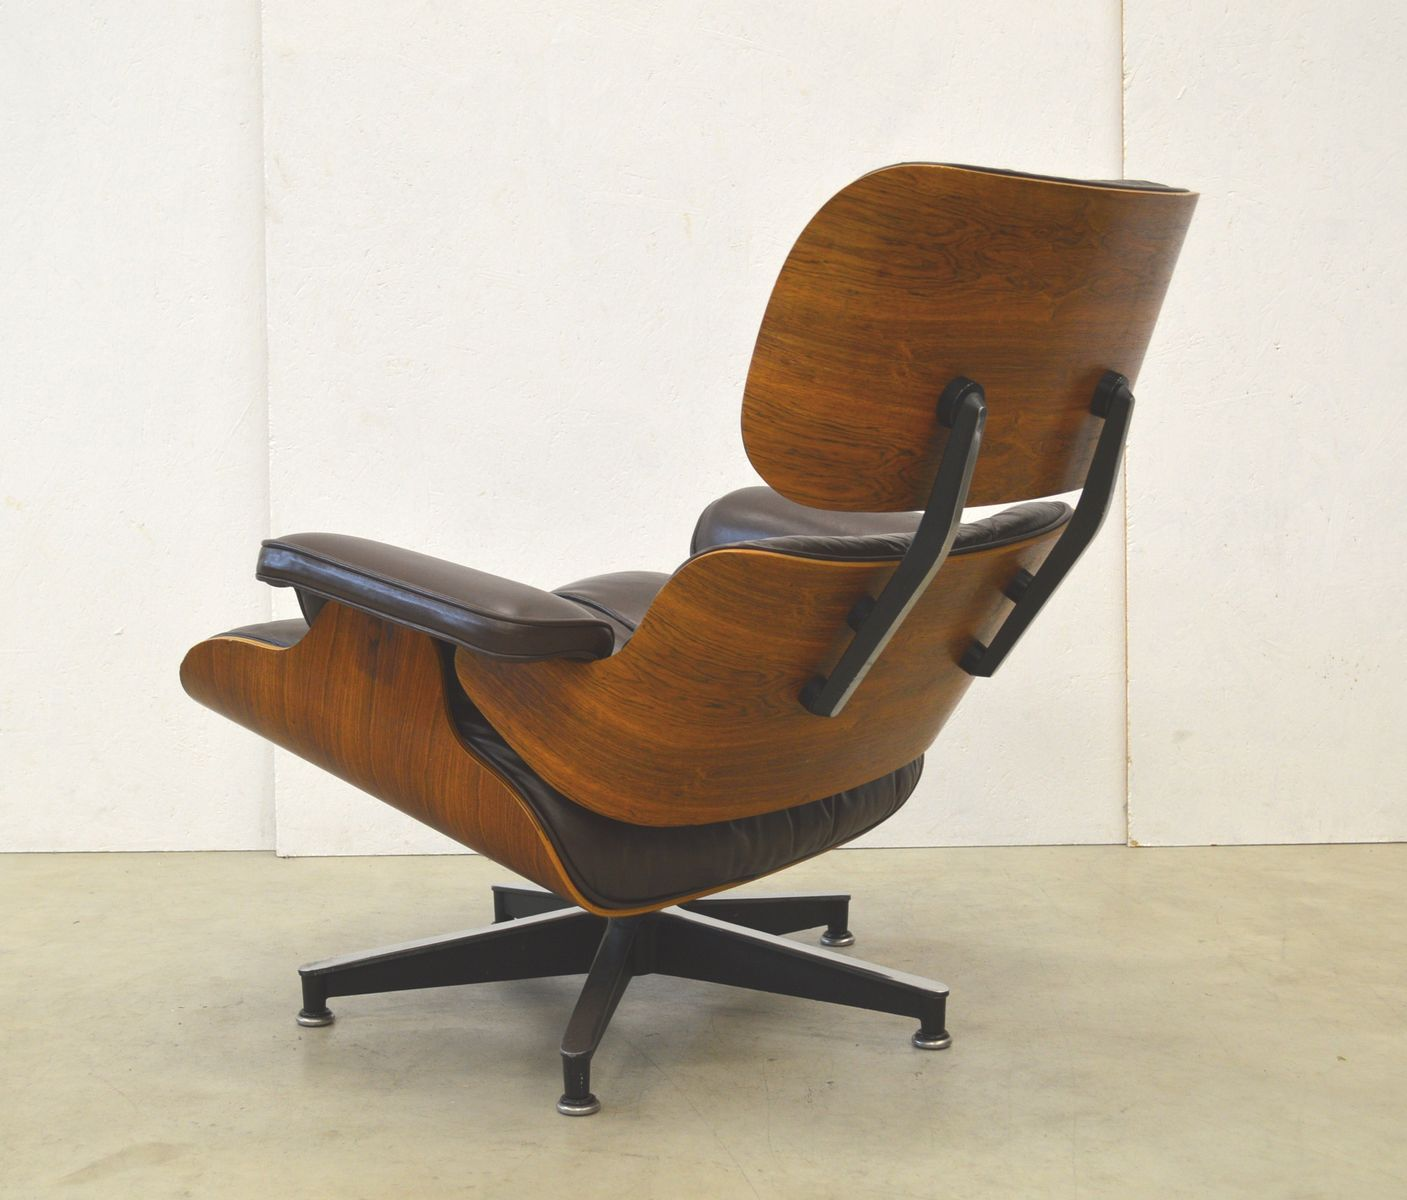 vintage rosewood lounge chair by charles ray eames for herman miller